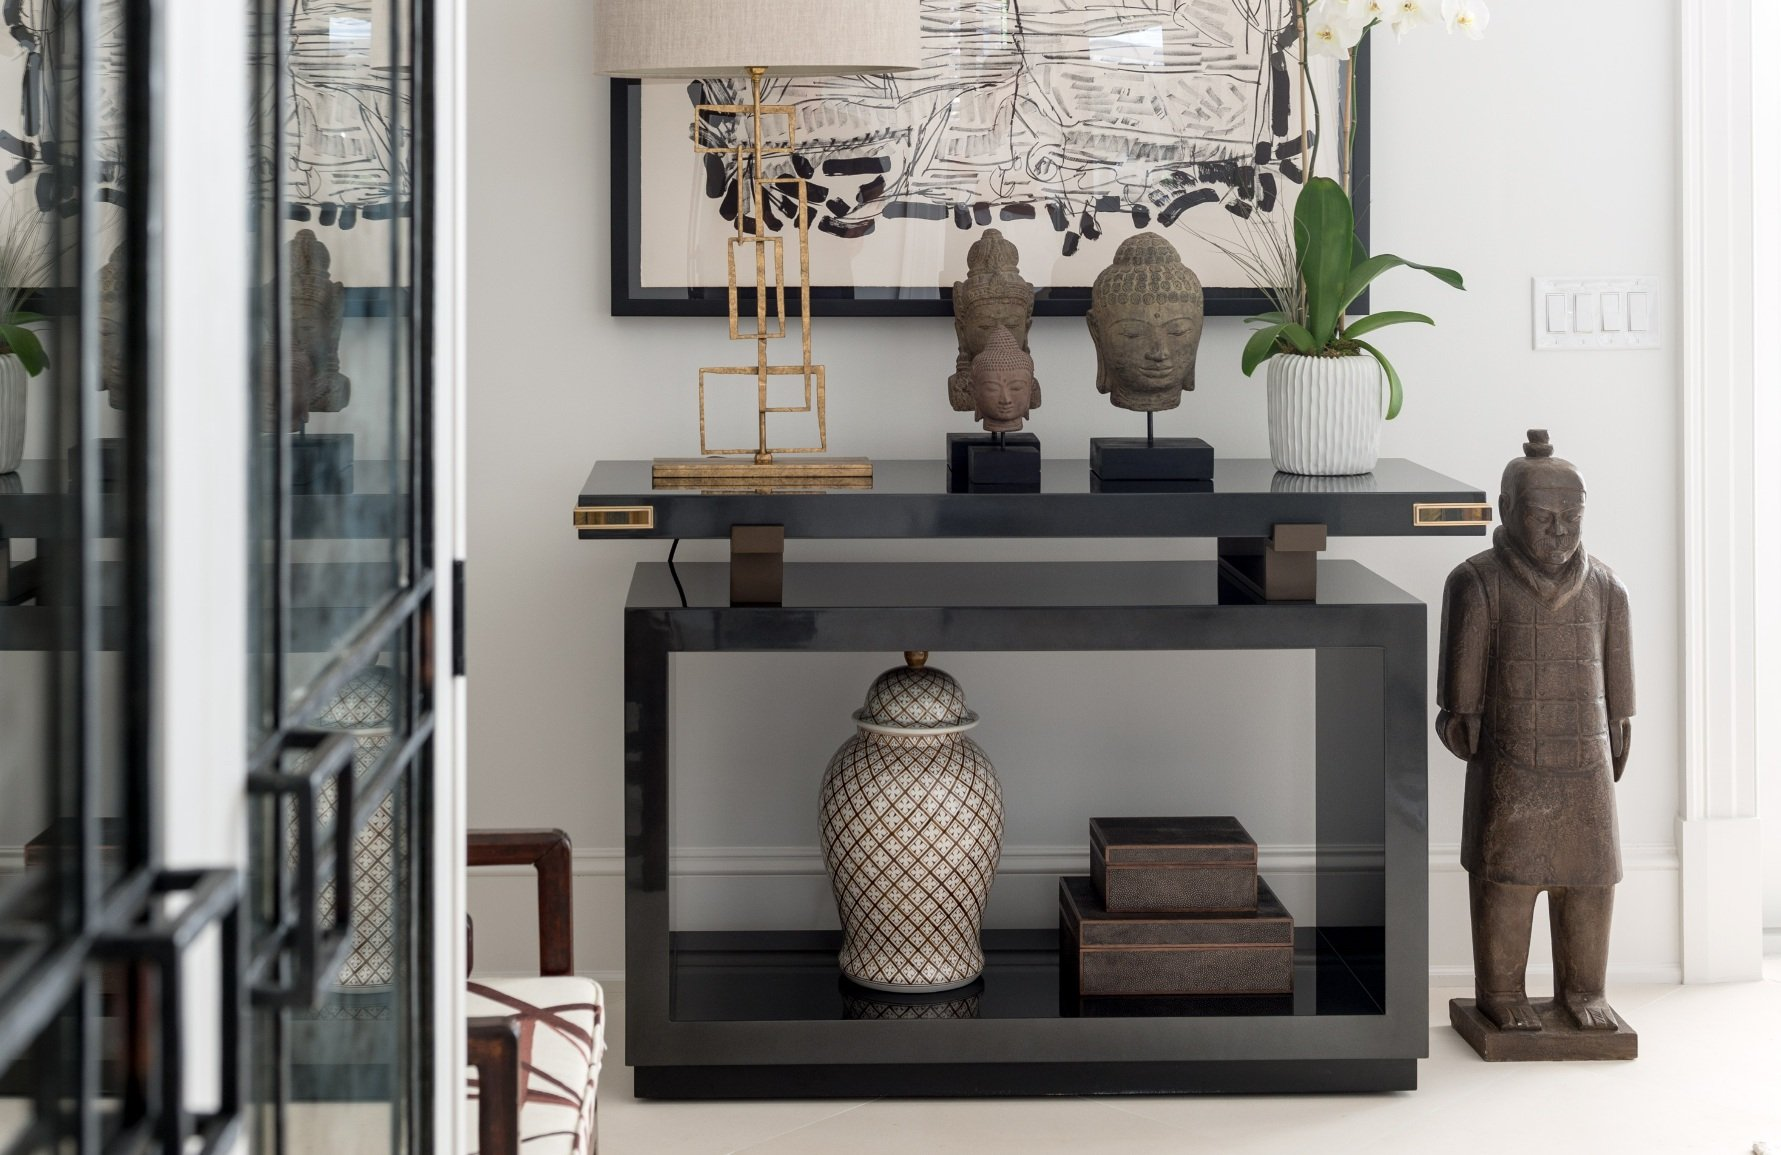 Chinese terracotta inspired decor and other accessories in a dedicated area of the home for displaying decor